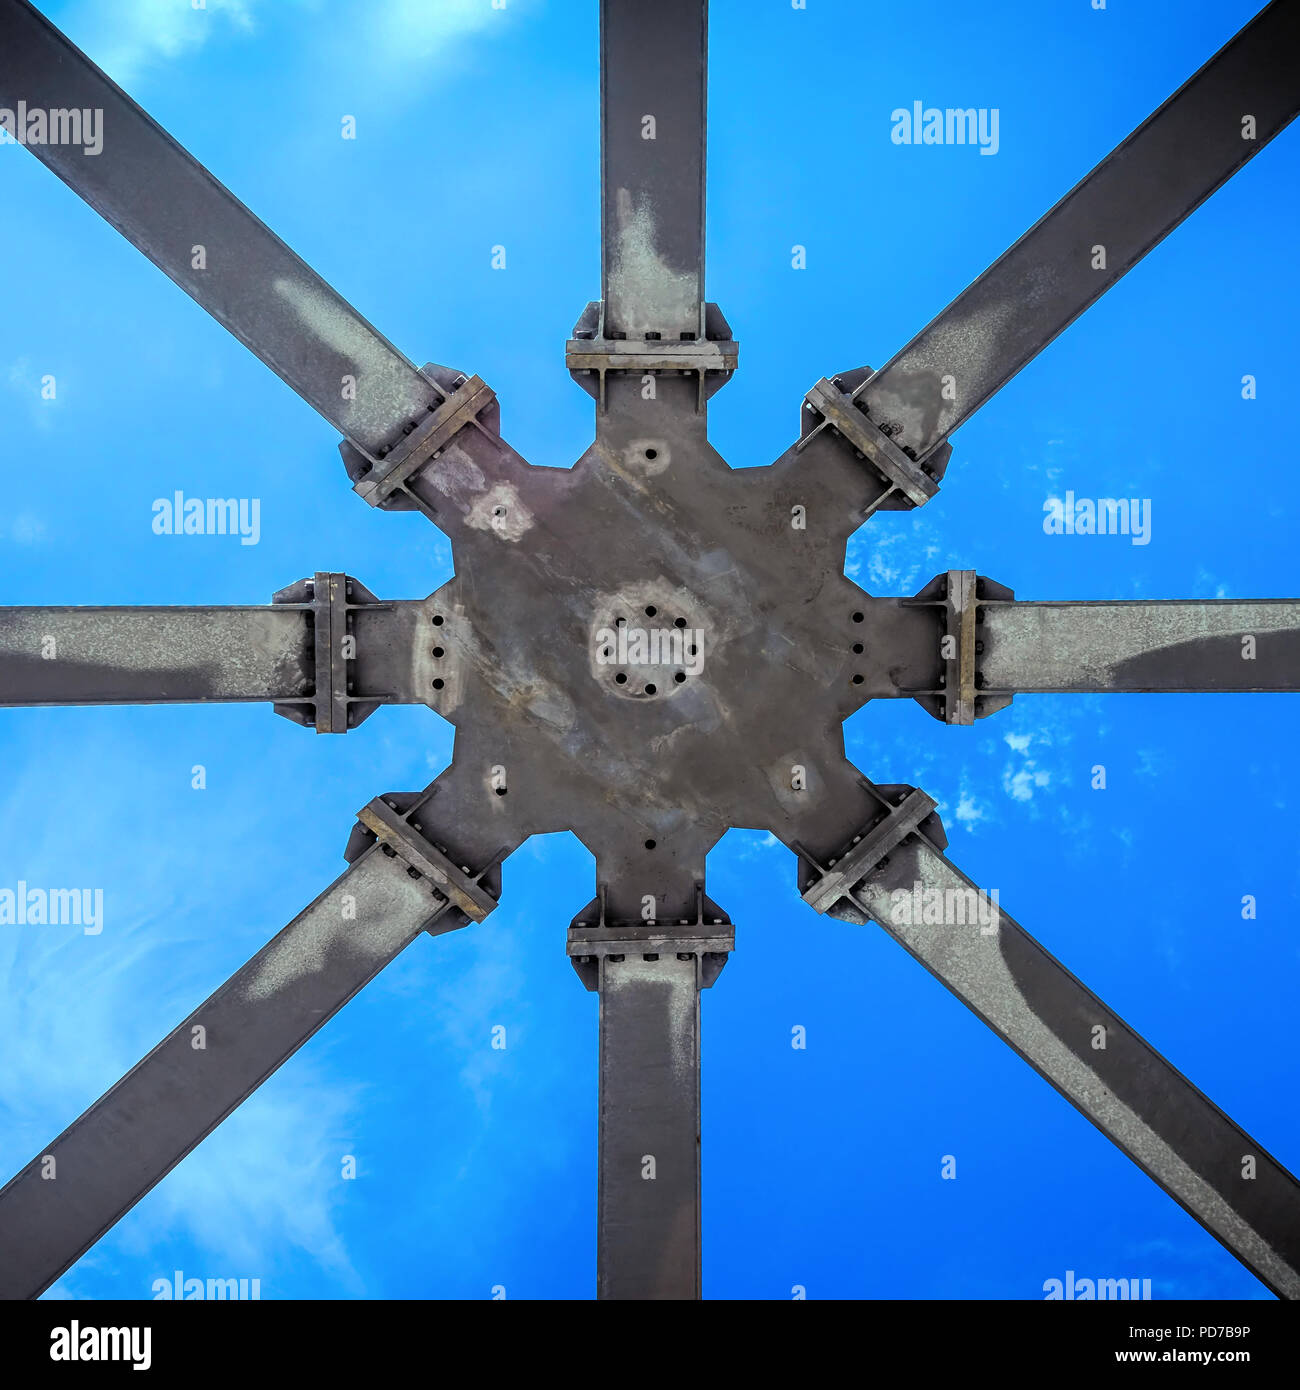 Star-shaped supporting structure taken from below against the blue sky, abstract geometric impression. - Stock Image